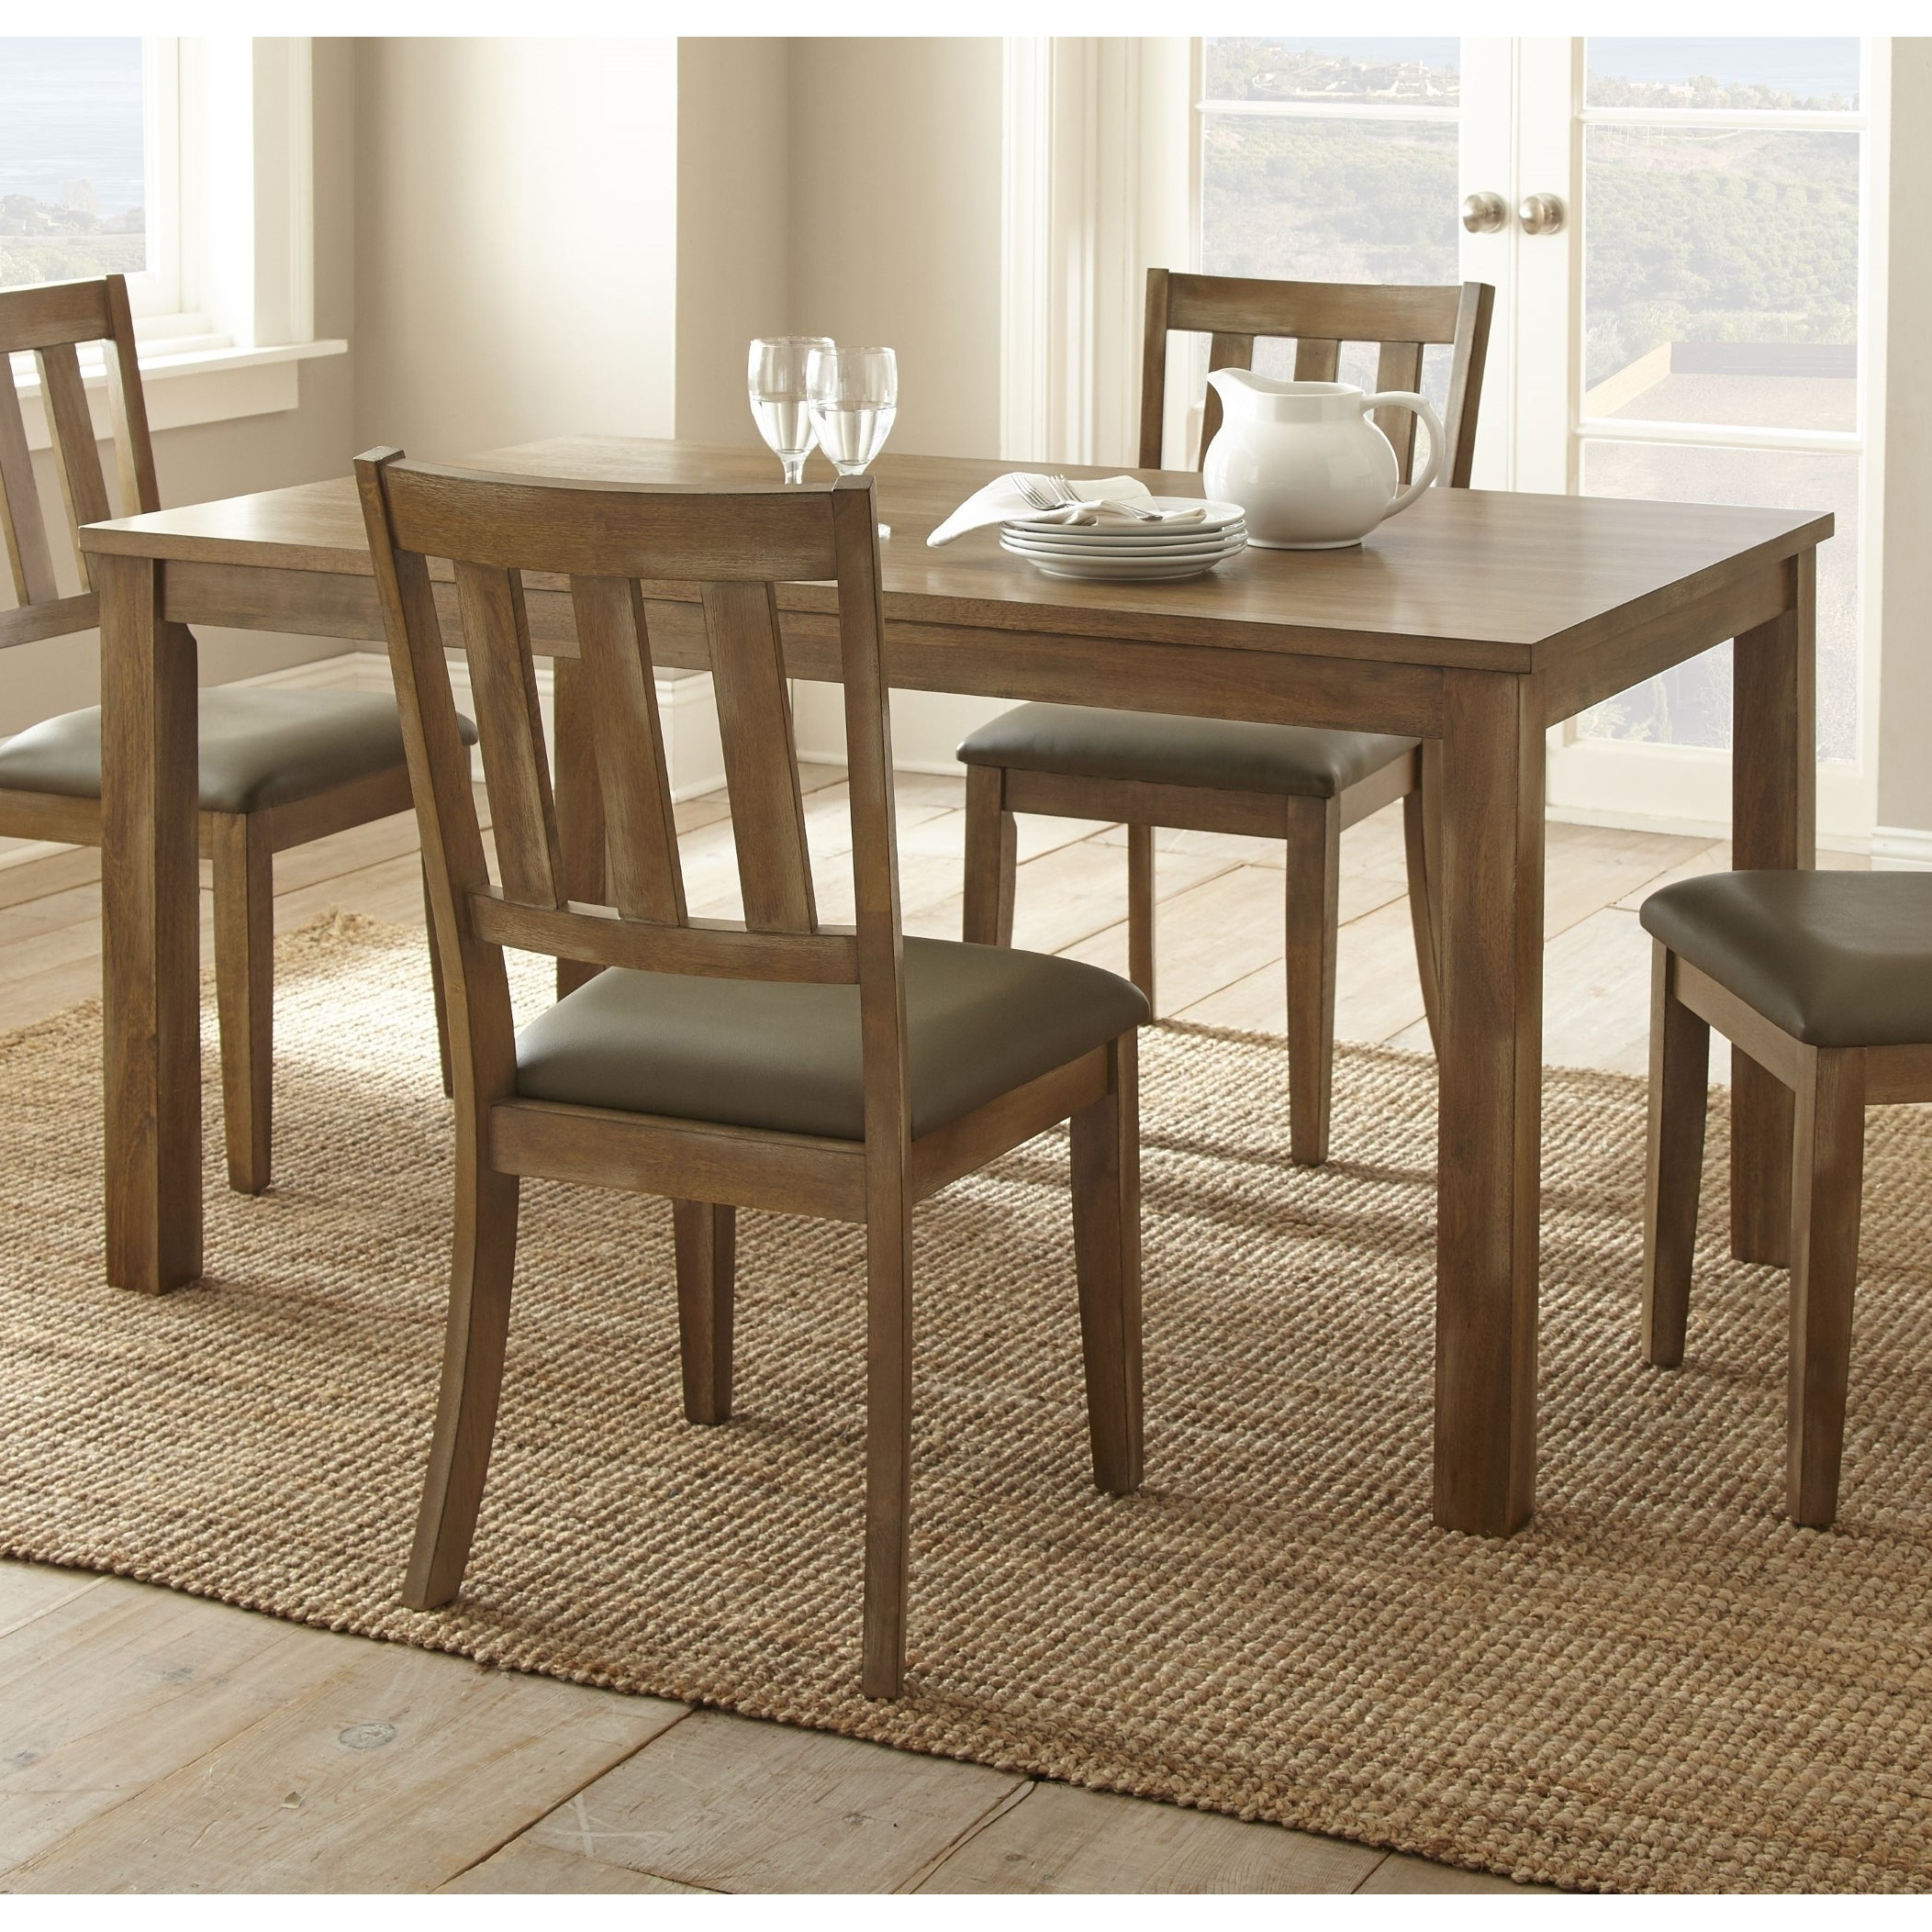 Well Liked Avondale 60 Inch Dining Tablegreyson Living With Avondale Dining Tables (View 15 of 25)